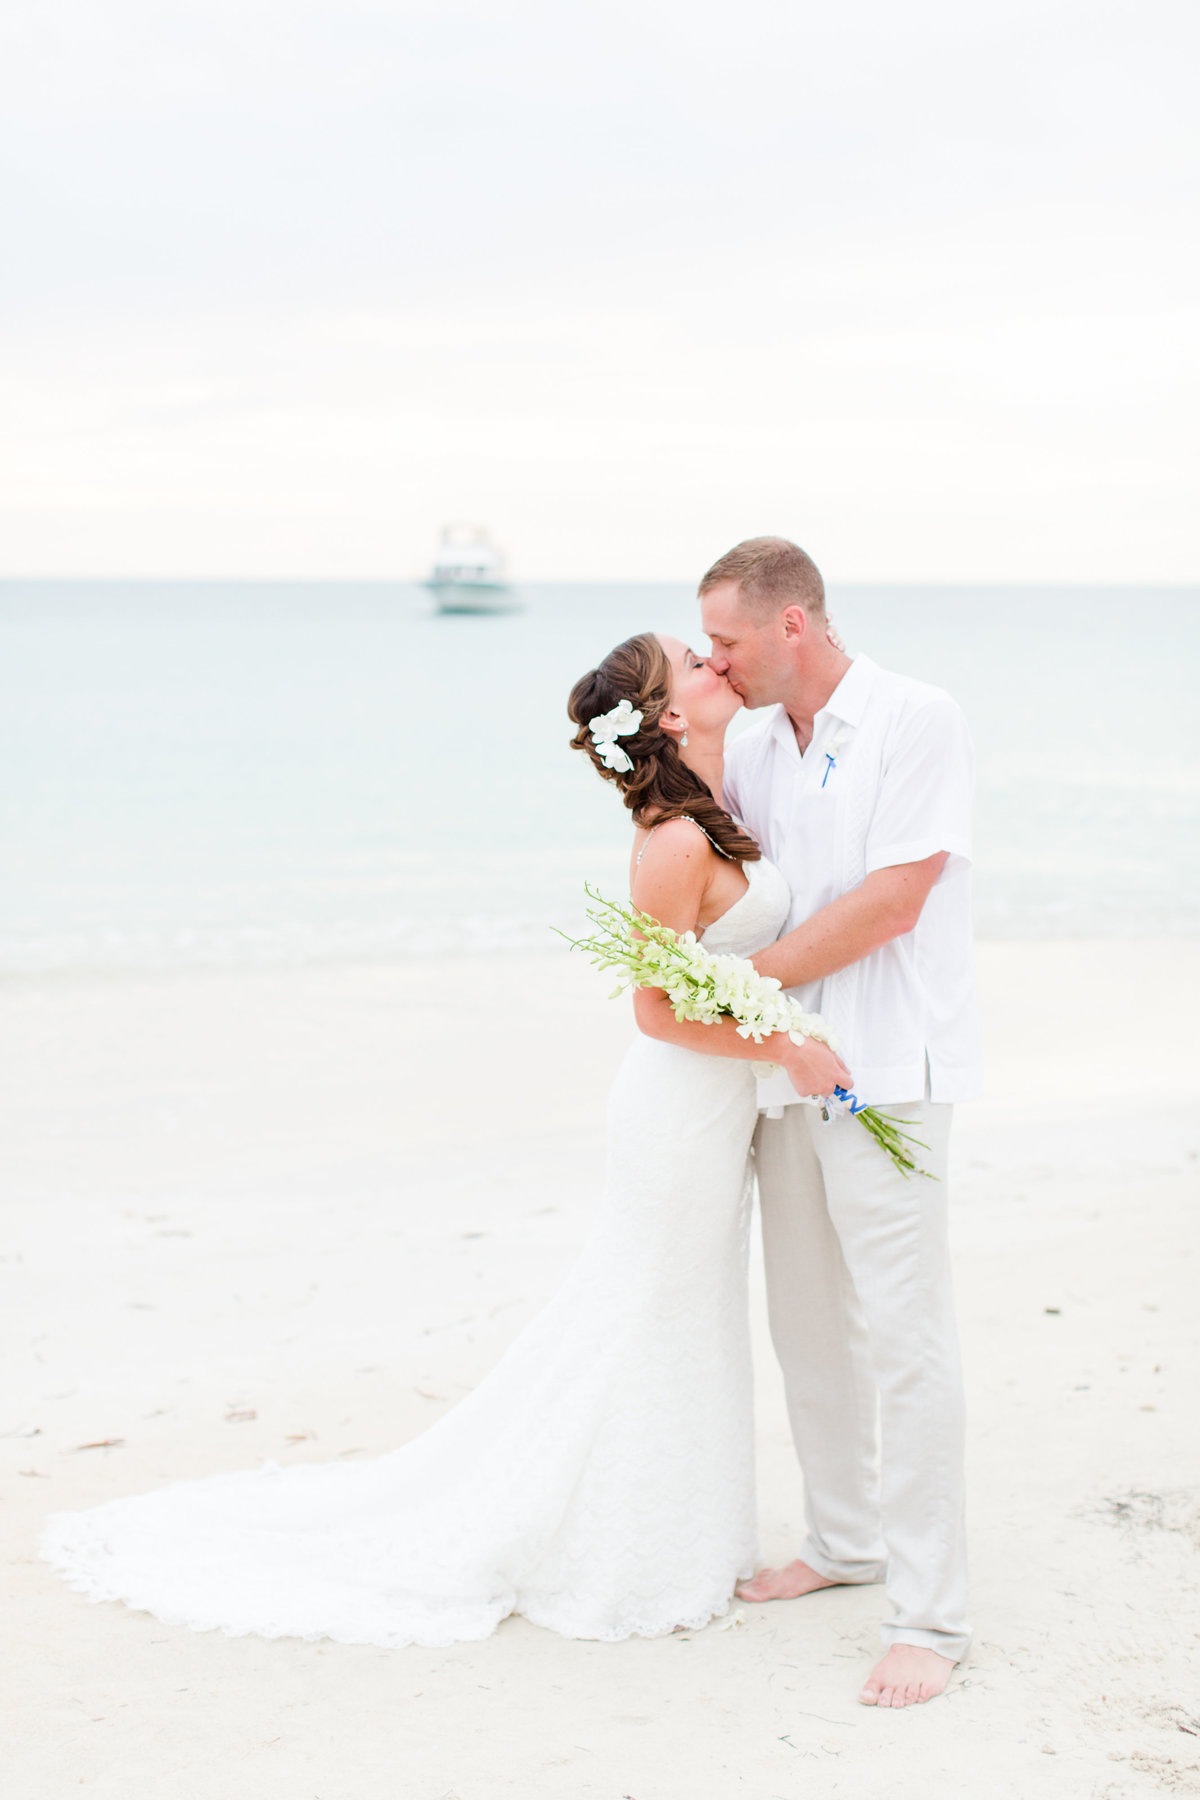 antigua-destination-wedding-fannin-bride-groom-portraits-bethanne-arthur-photography-photos-33